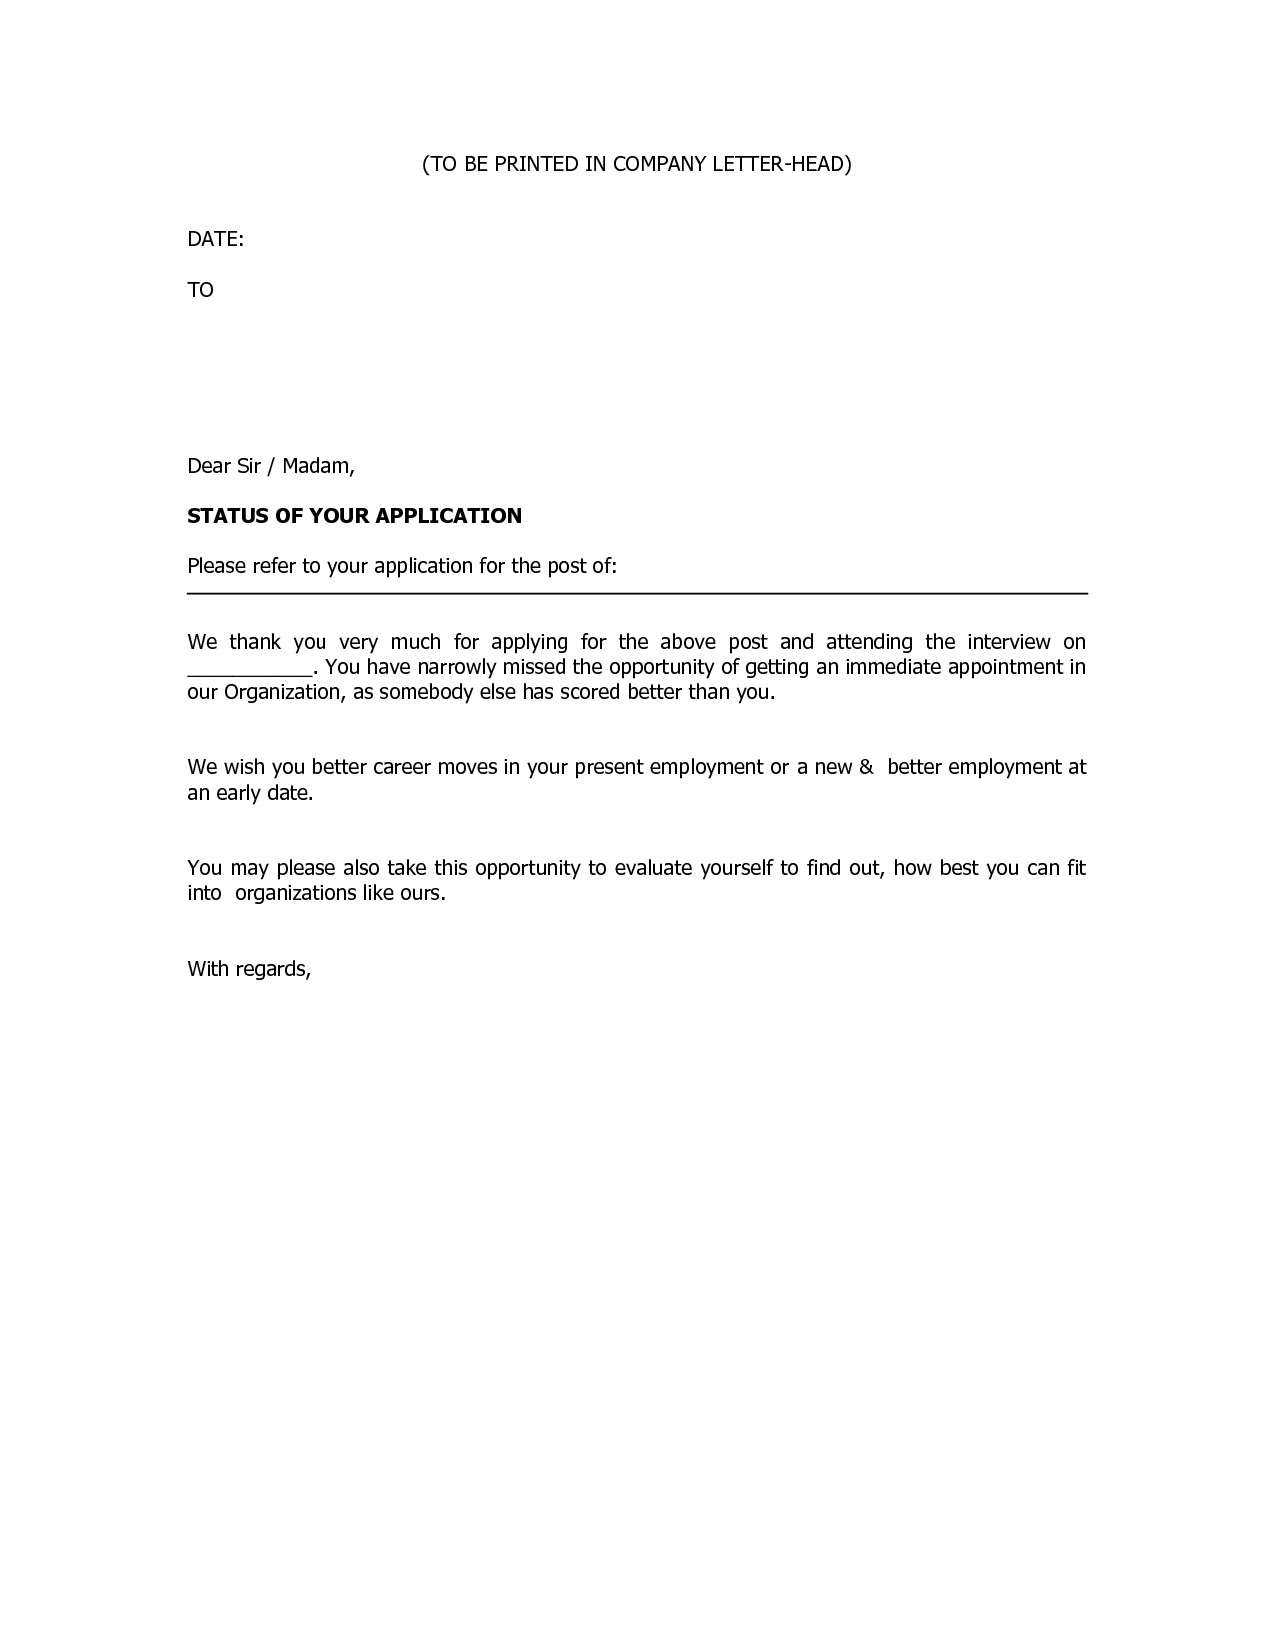 Rejection Letter Template after Interview - Job Rejection Letter Sample Luxury Business Rejection Letter